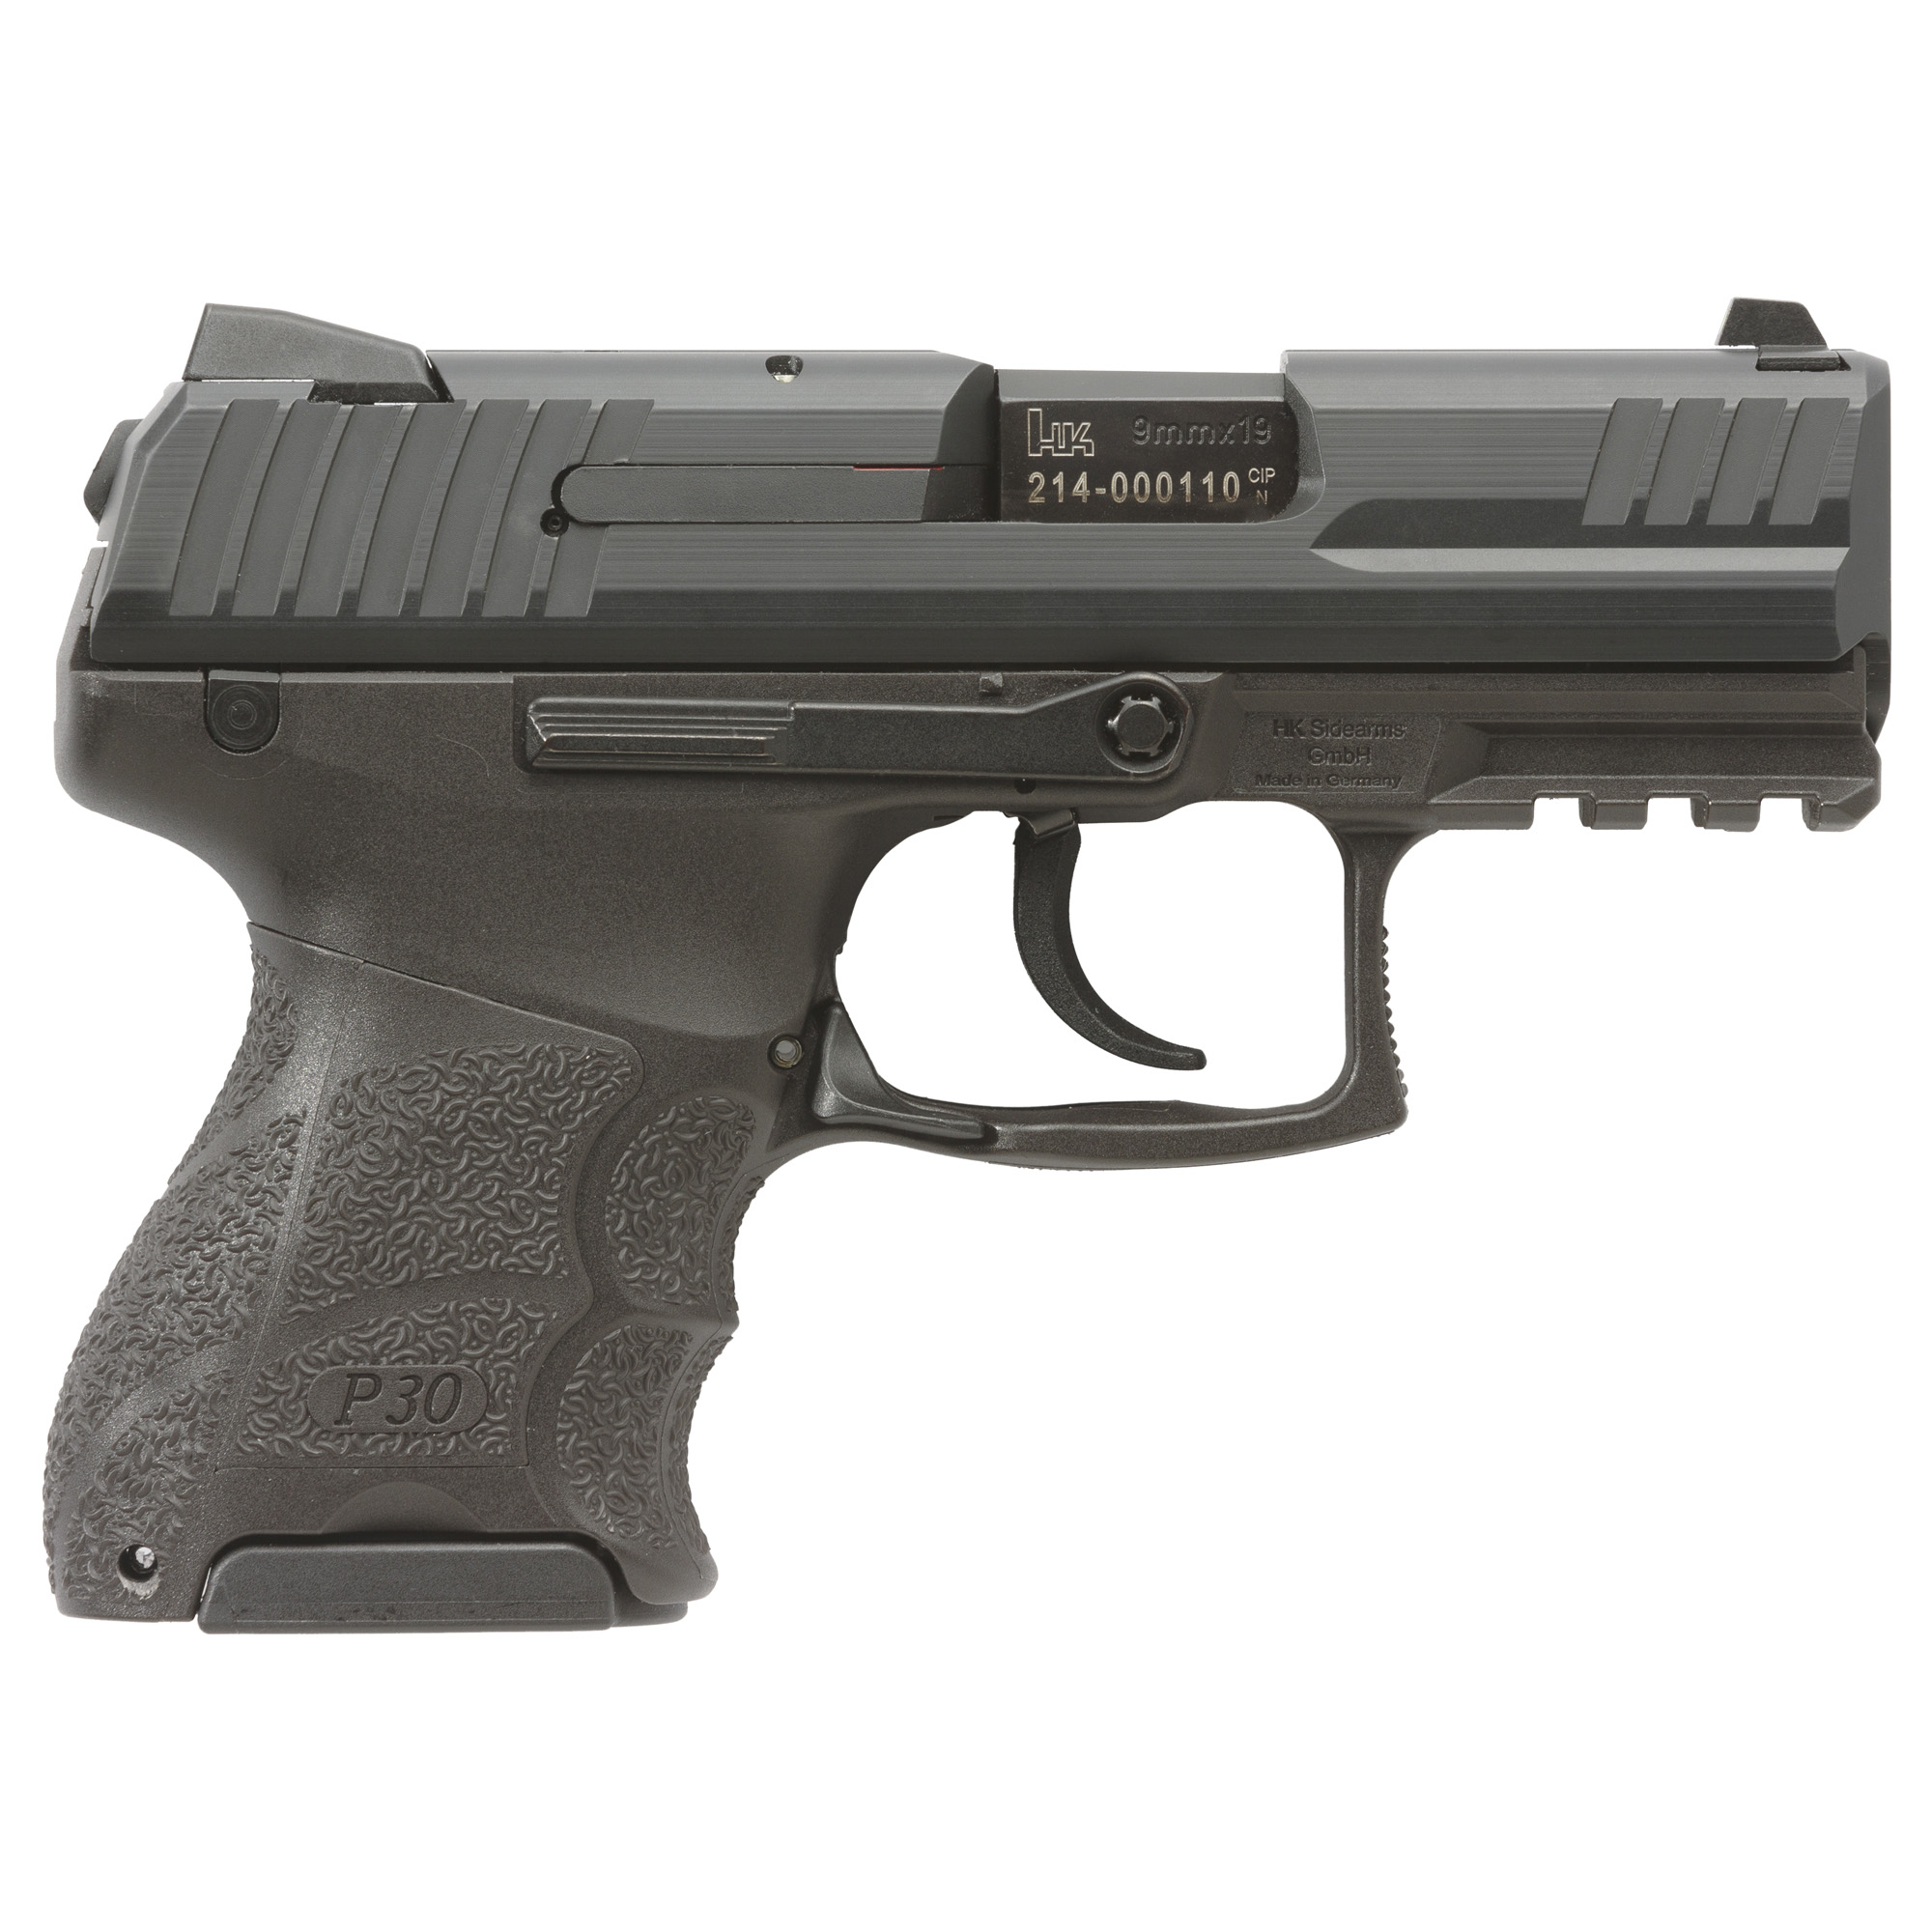 """The subcompact model of the renowned P30 handgun"""" P30SK (SubKompact) series has all of the sought-after characteristics of the larger frame P30 and P30L pistols but in a more concealable design. The completely adjustable P30 grip feature - consisting of interchangeable backstraps and lateral grip panels - is replicated in the ultra-compact grip frame of the P30SK. This allows the pistol to be easily modified to fit to any individual user."""